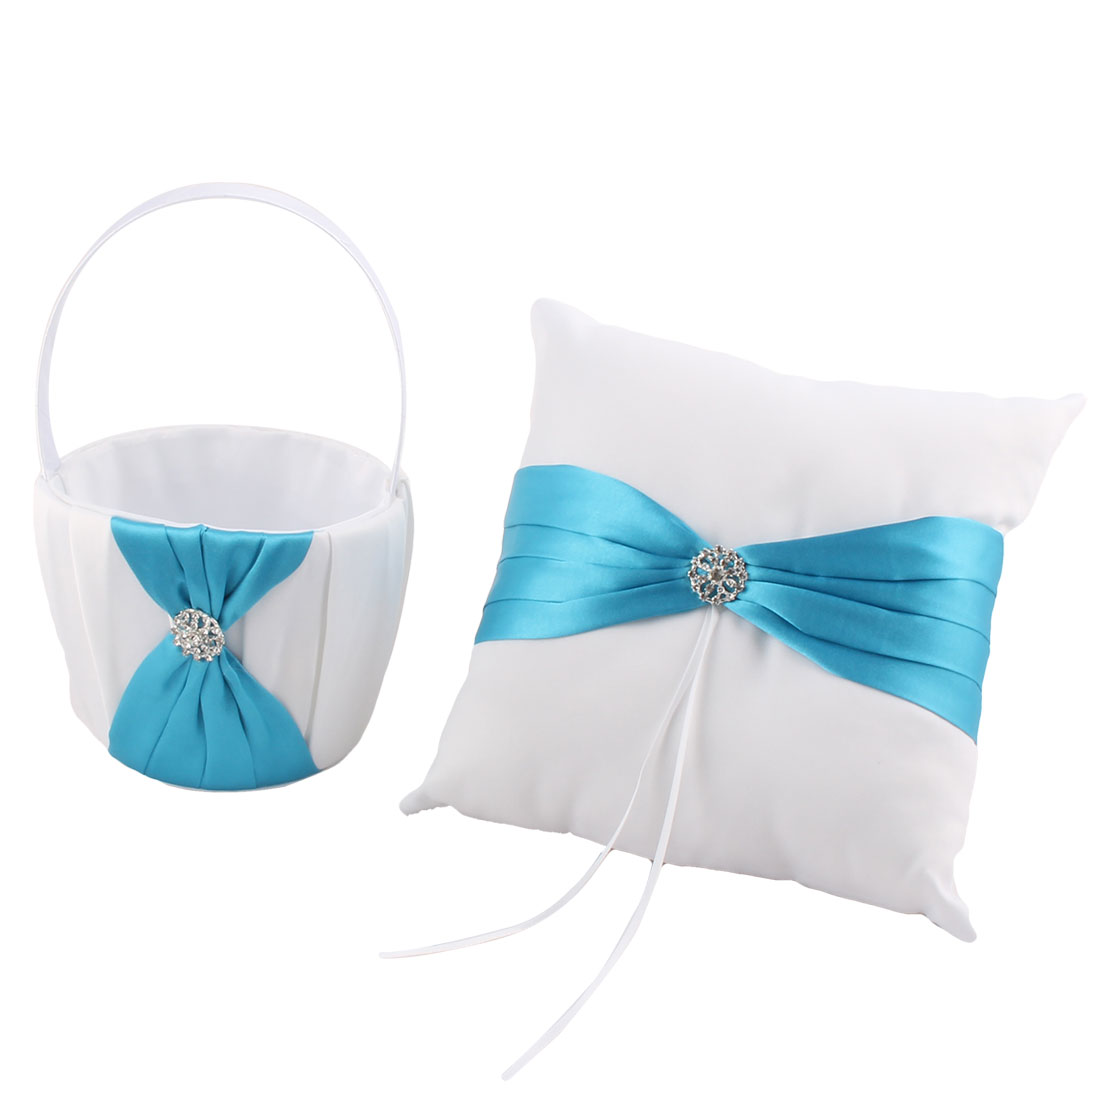 Wedding Party Satin Butterfly Knot Decor Flower Basket Ring Pillow Blue 2 in 1 by Unique-Bargains